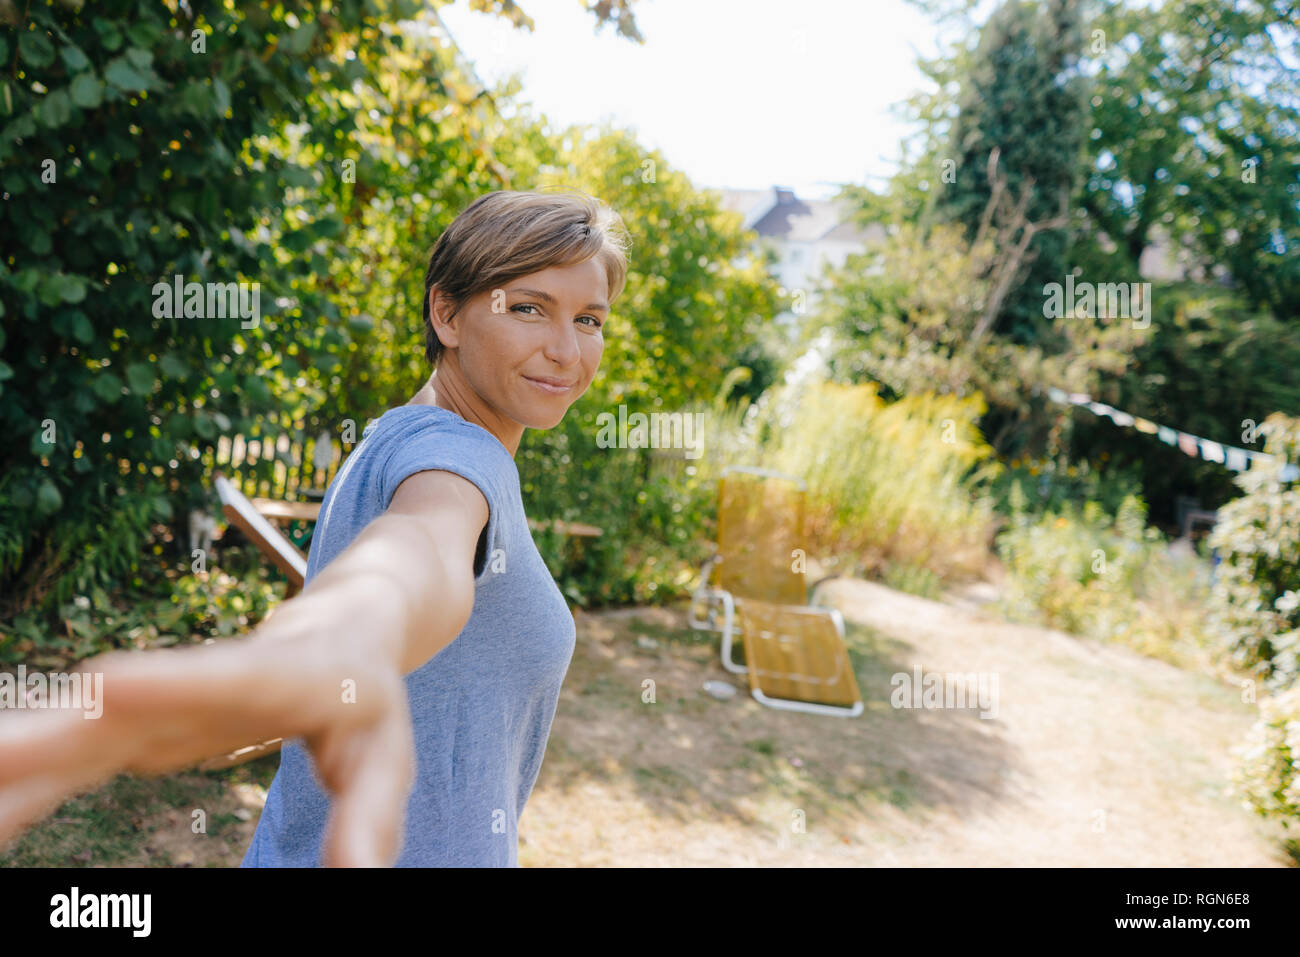 Portrait of smiling woman in garden reaching out Stock Photo